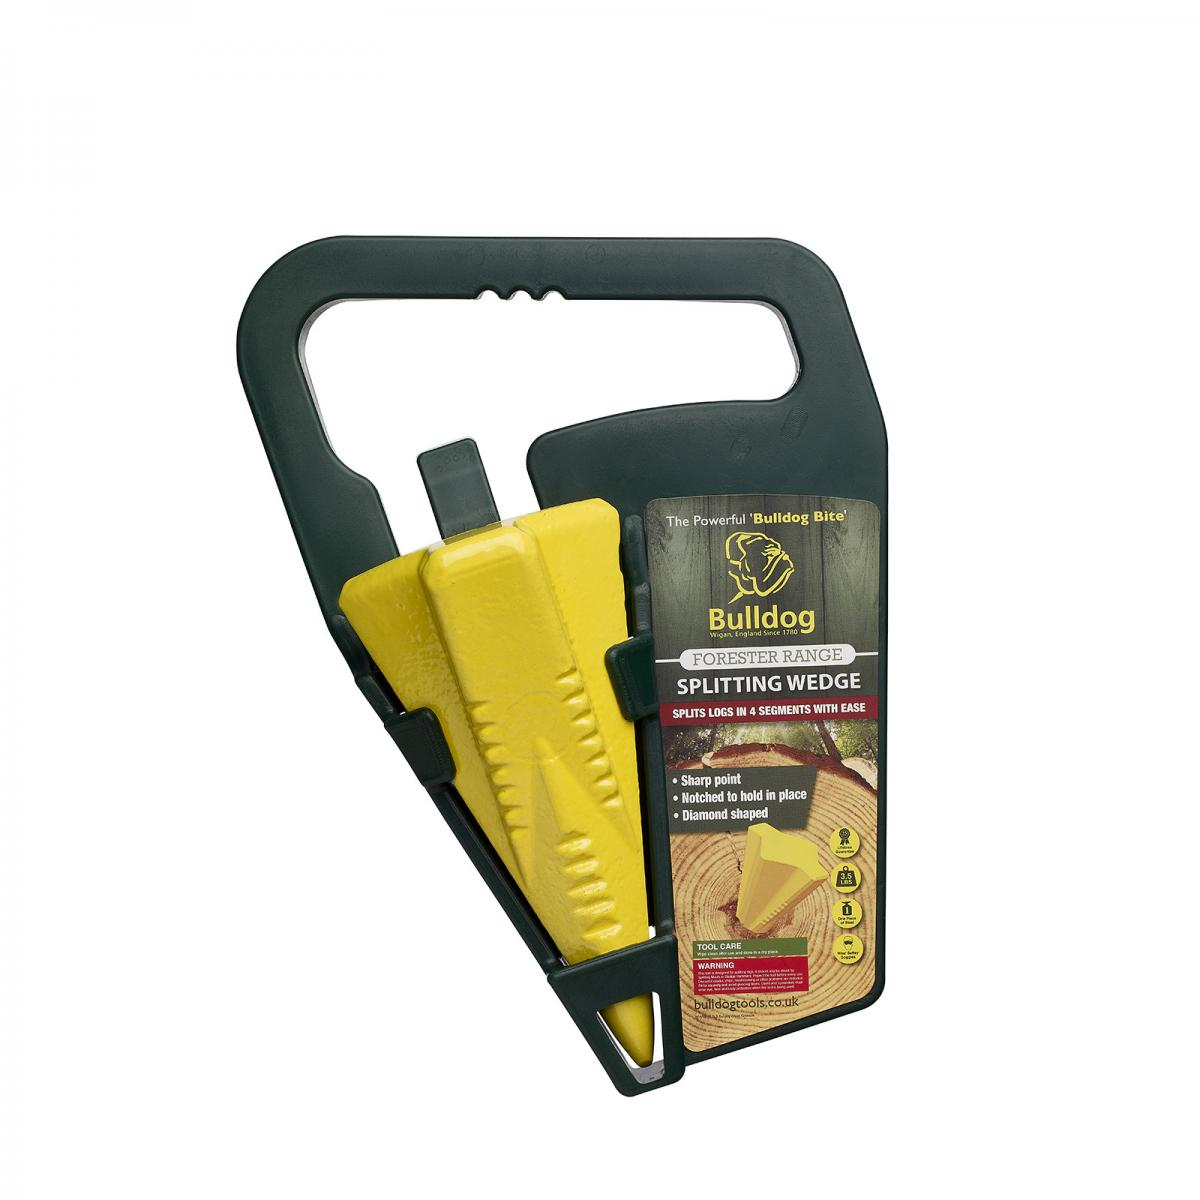 Bulldog Log Splitting Wedge 3.5lb – Now Only £10.00